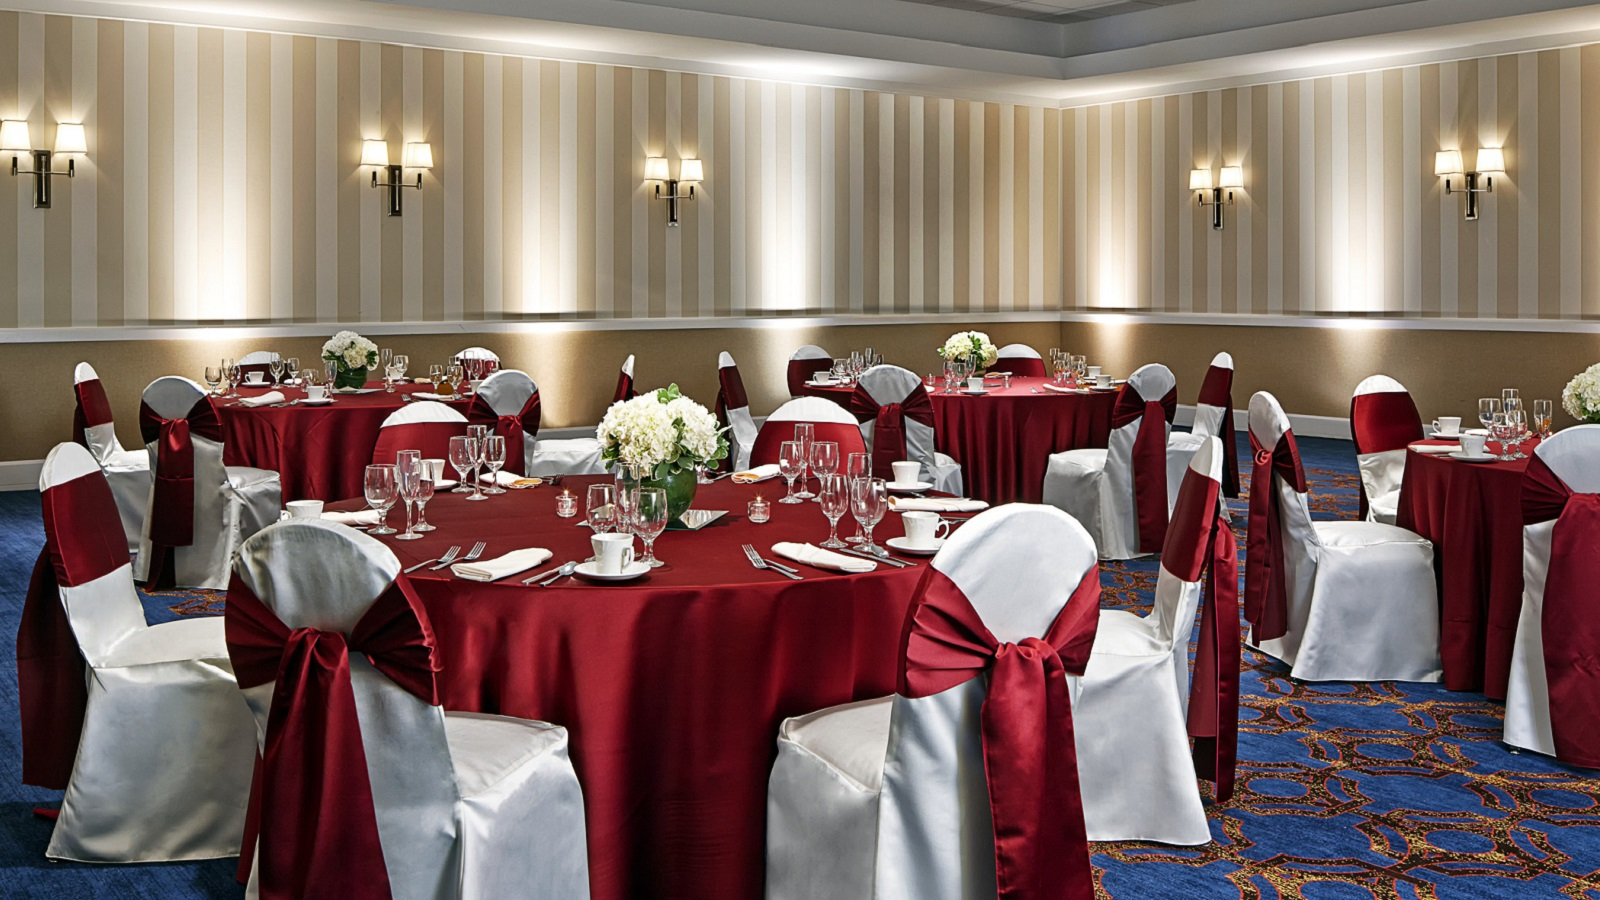 Wedding reception venues milwaukee sheraton milwaukee brookfield ballroom space junglespirit Image collections